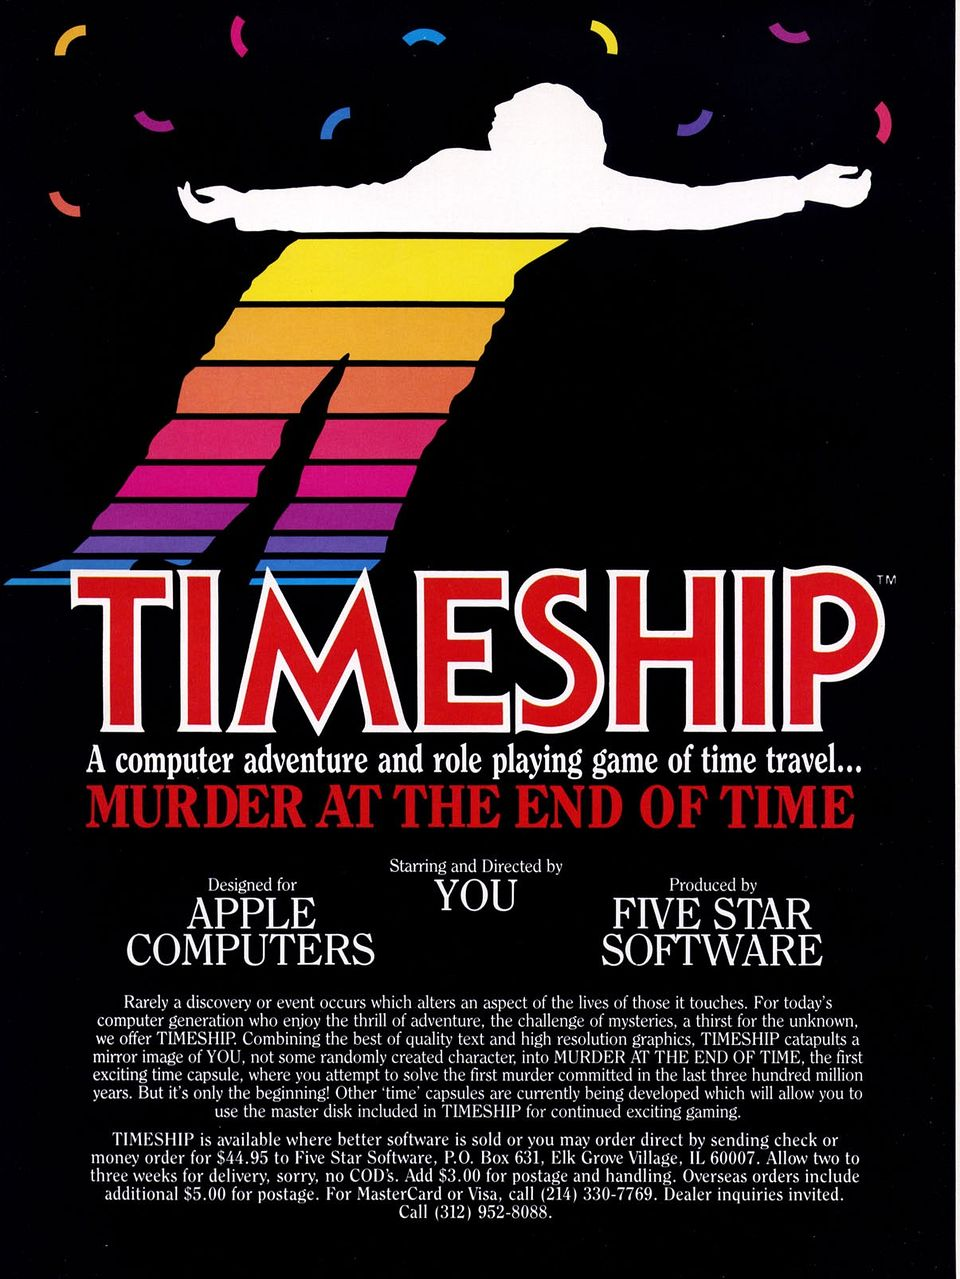 Advertisement: Timeship